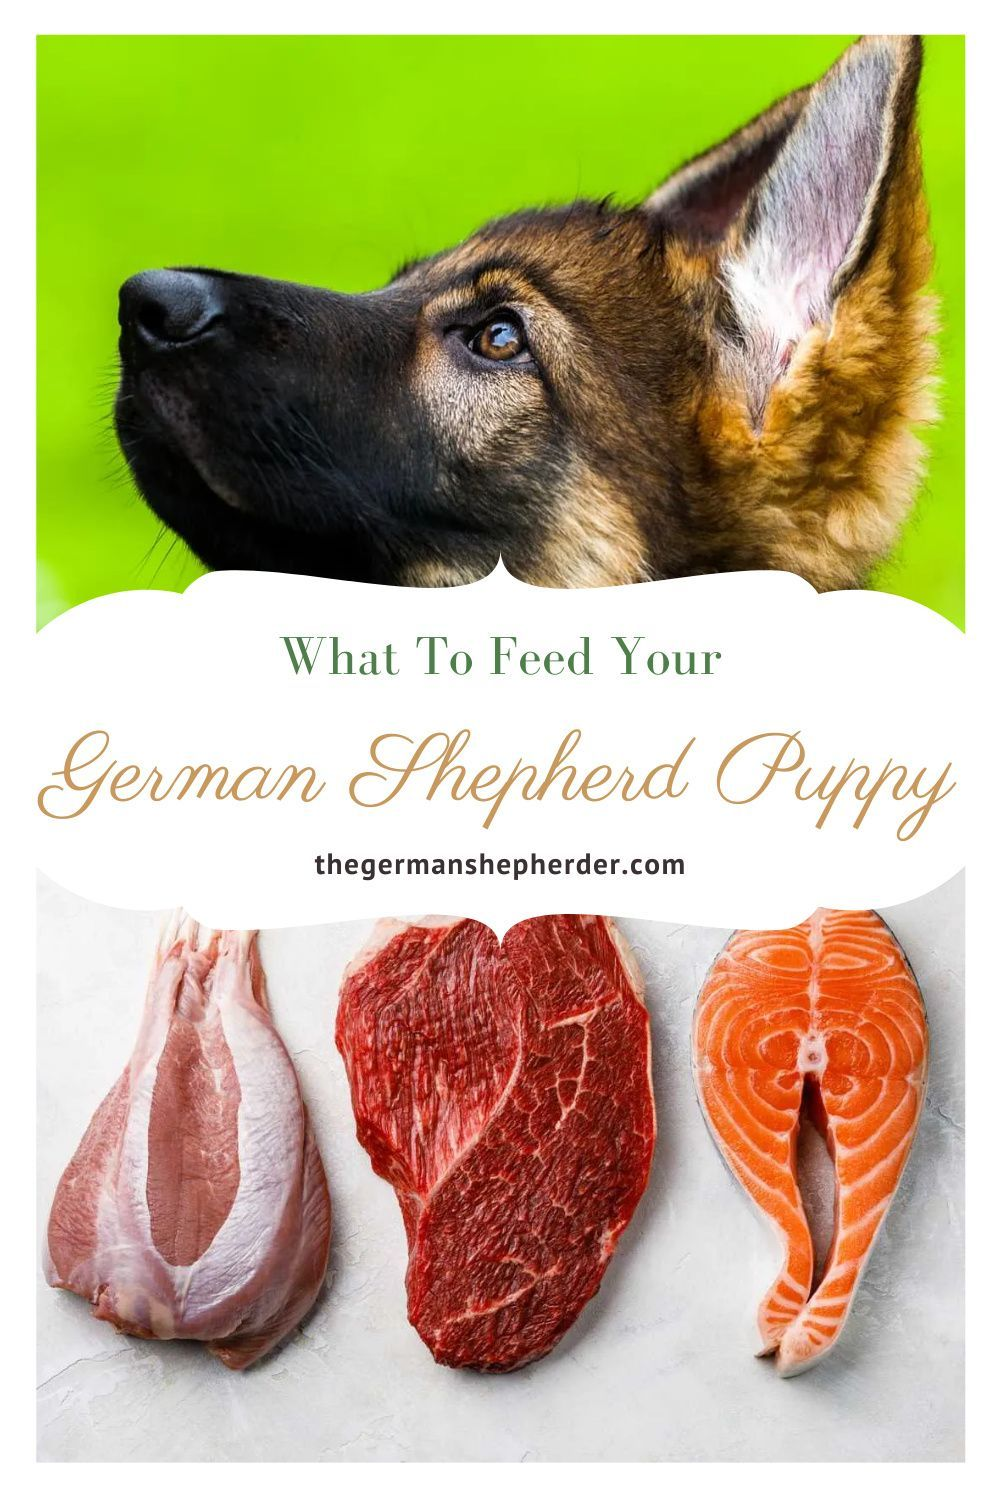 What To Feed Your German Shepherd Puppy The German Shepherder In 2020 German Shepherd Puppies German Shepherd Shepherds Diet